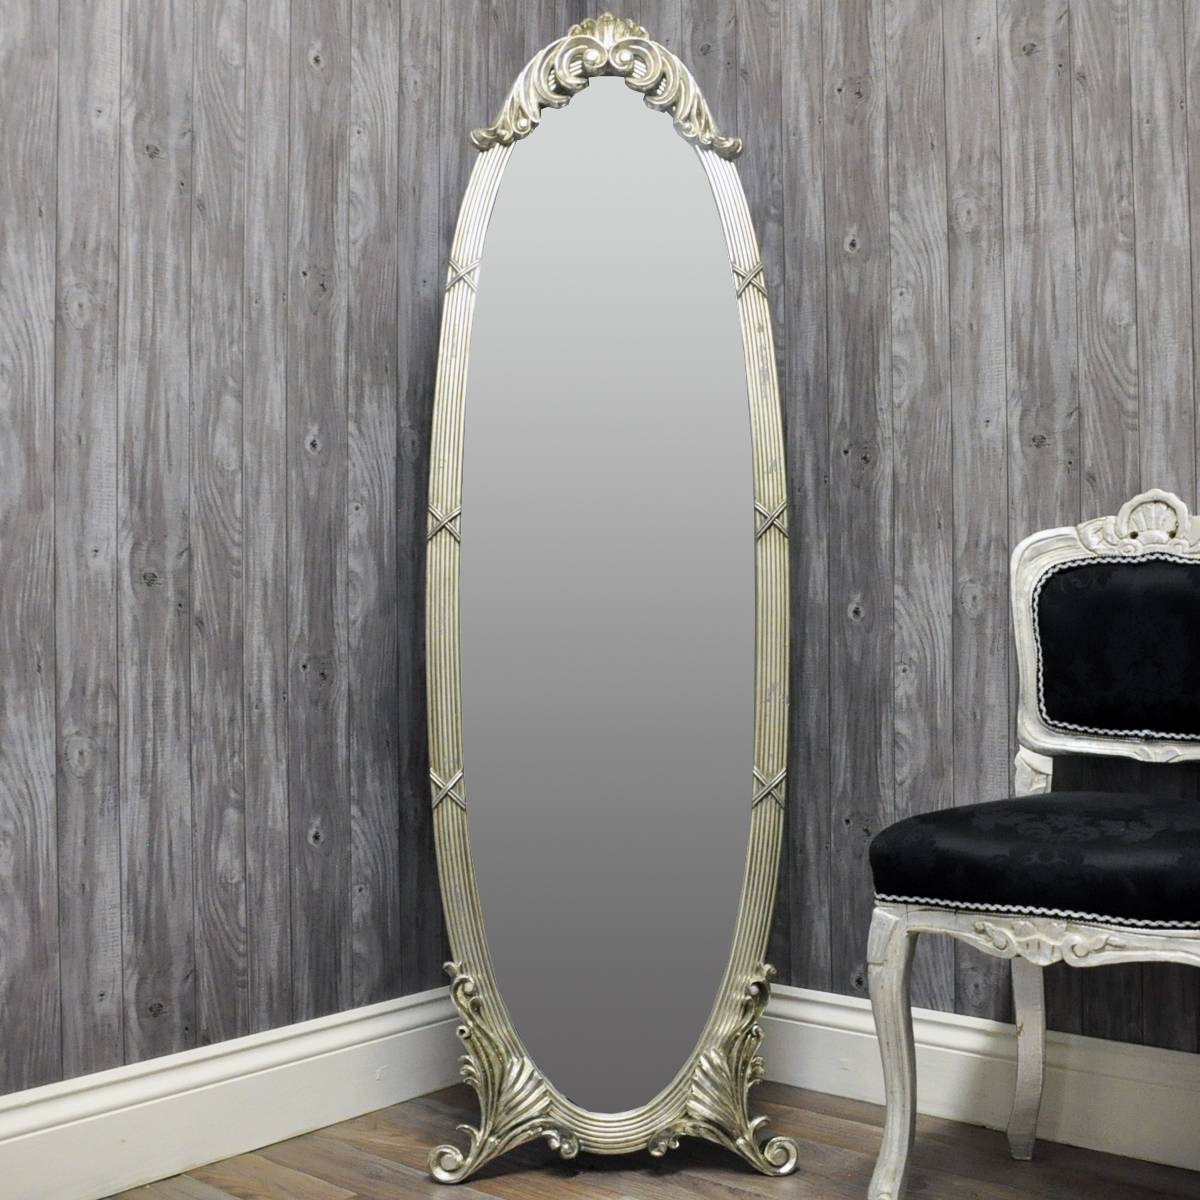 French Style Silver Oval Cheval Mirror - Acacia Trading (Leeds) Ltd inside Silver Cheval Mirrors (Image 15 of 25)